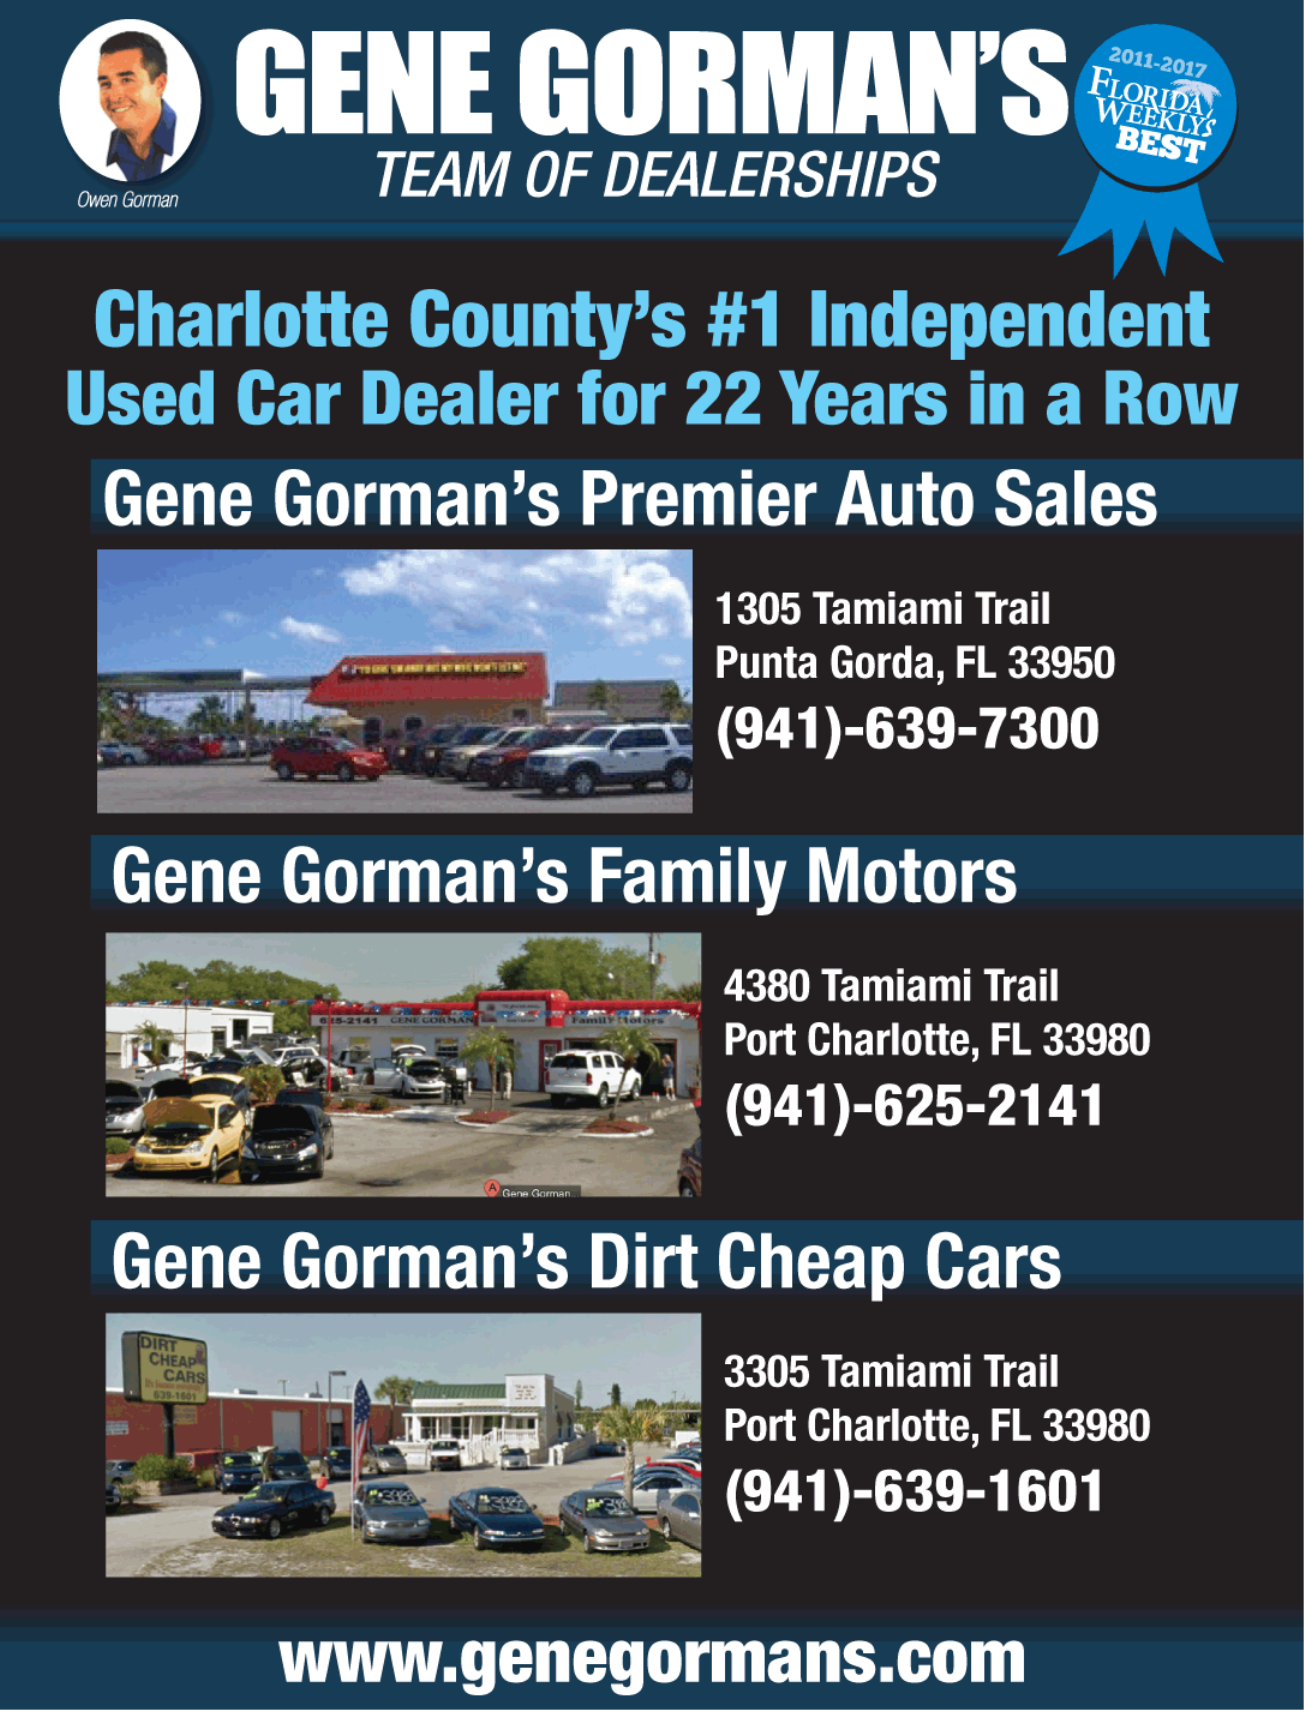 Charlotte CountyÂu0027s #1 Independent Used Car Dealer For 22 Years In A Row  Gene GormanÂu0027s Family Motors 4380 Tamiami Trail Port Charlotte, FL 33980 ...